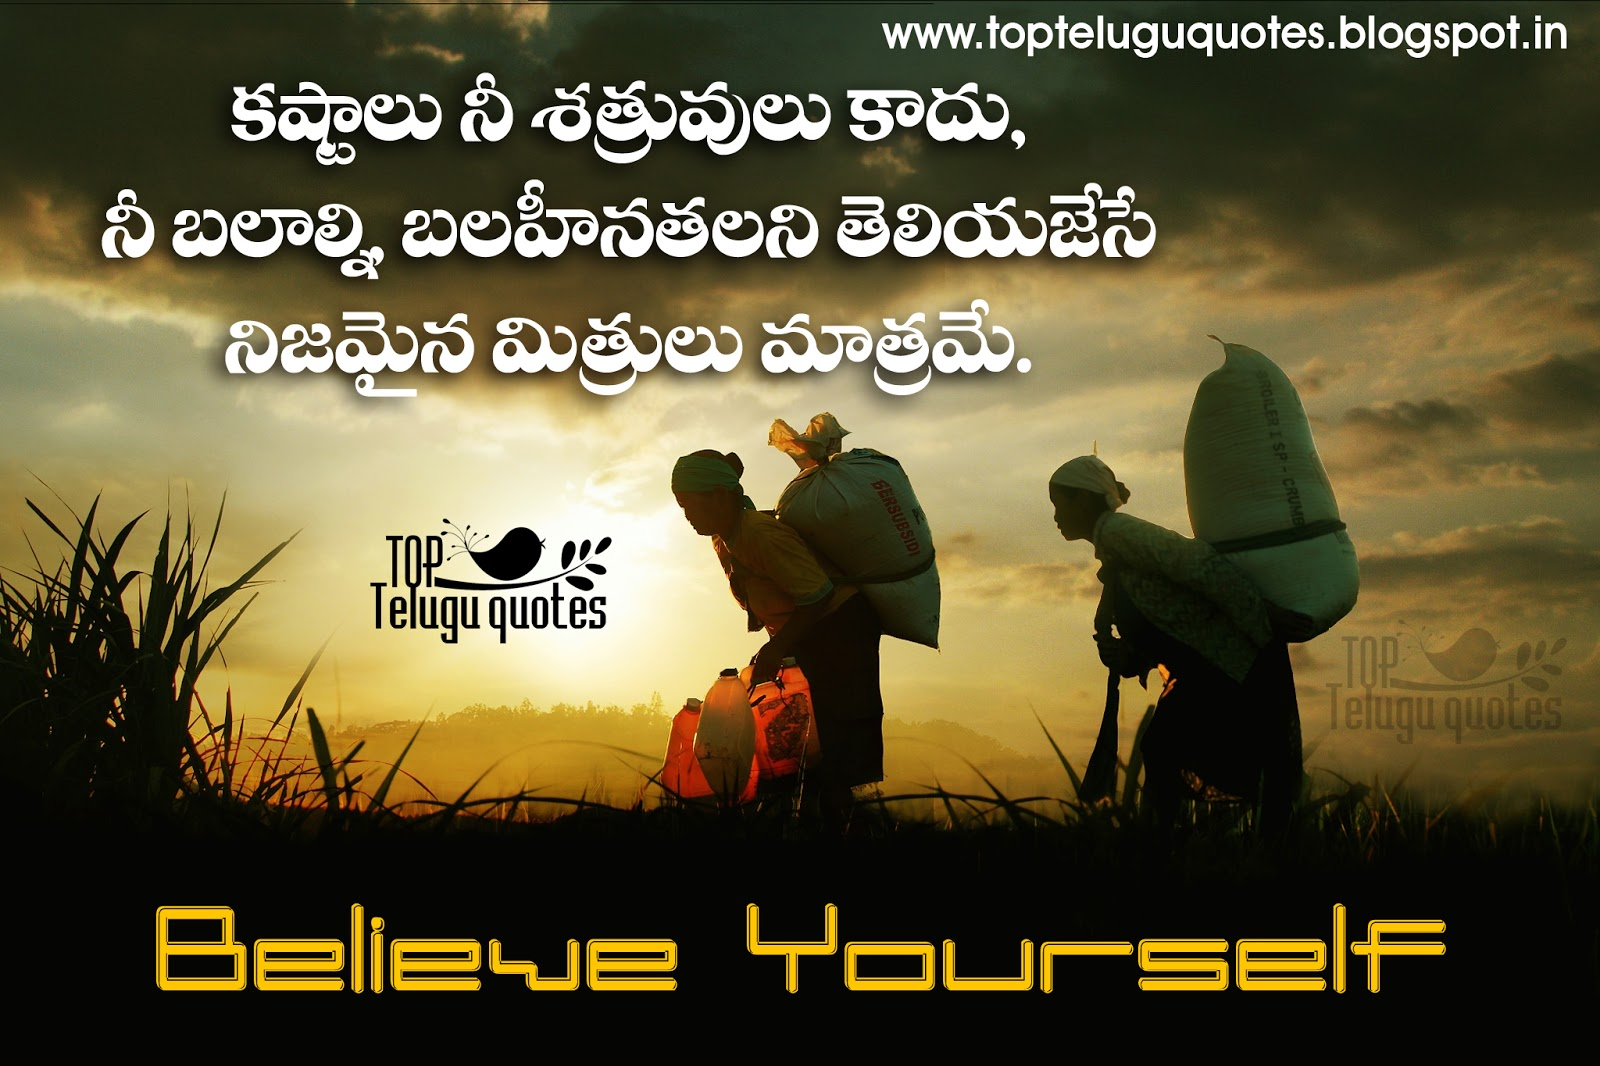 telugu best quotes images on life all top